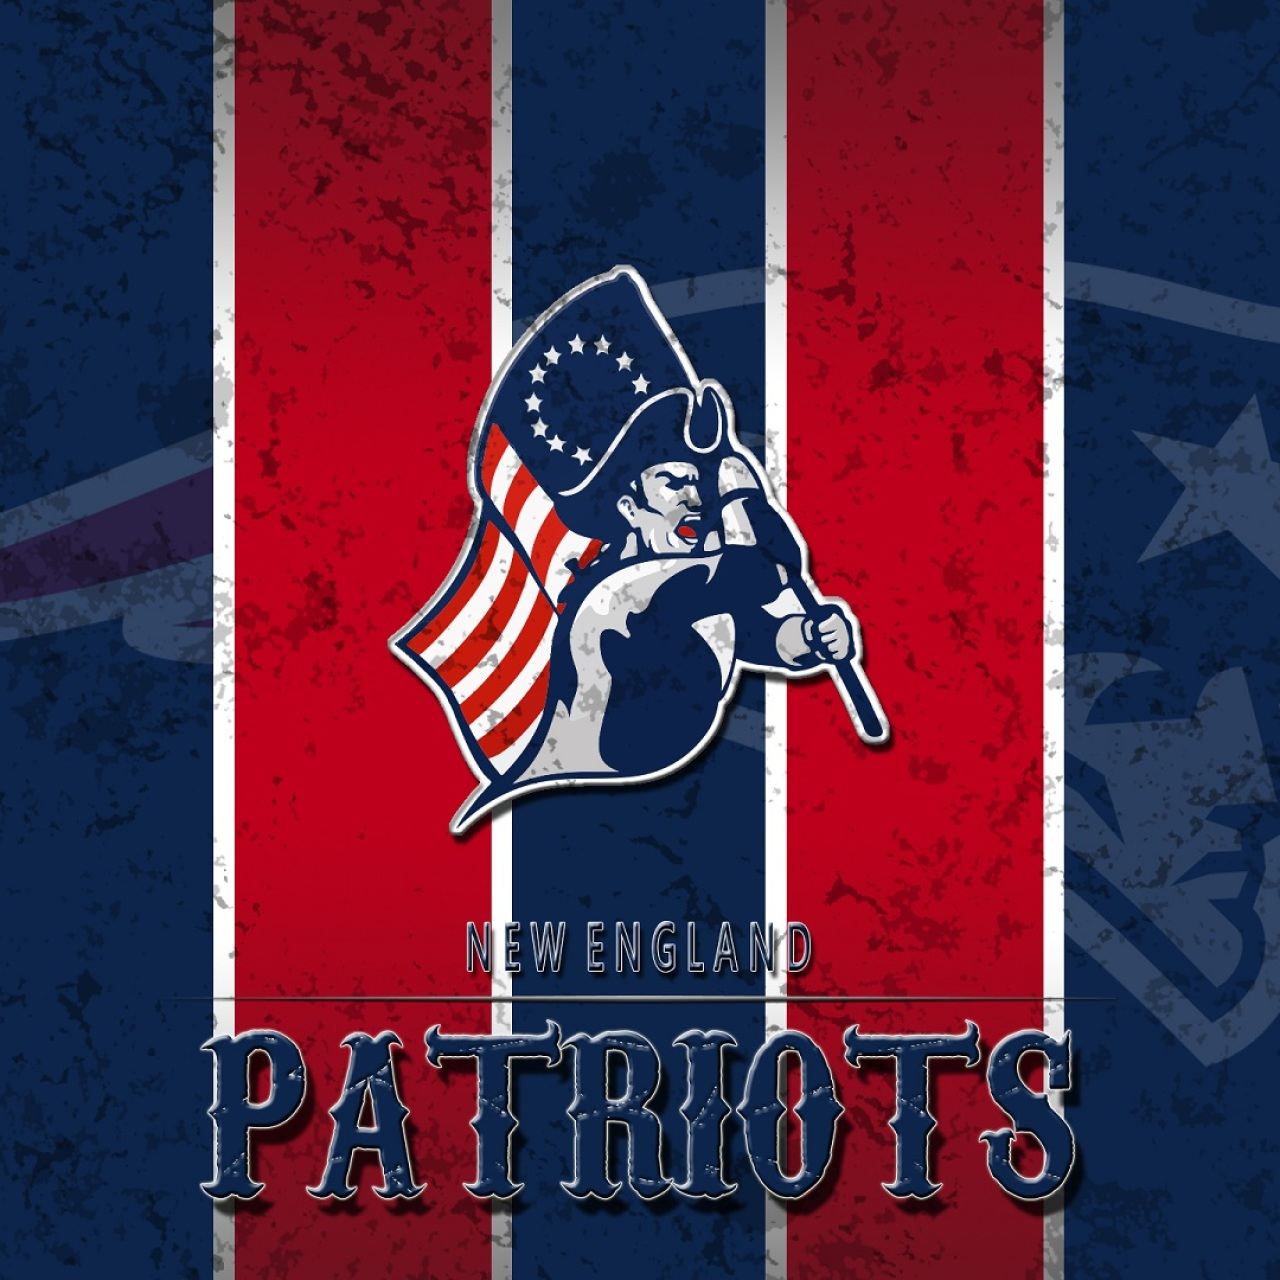 Patriots Logo Wallpaper: 2015 Patriots Champions Wallpaper